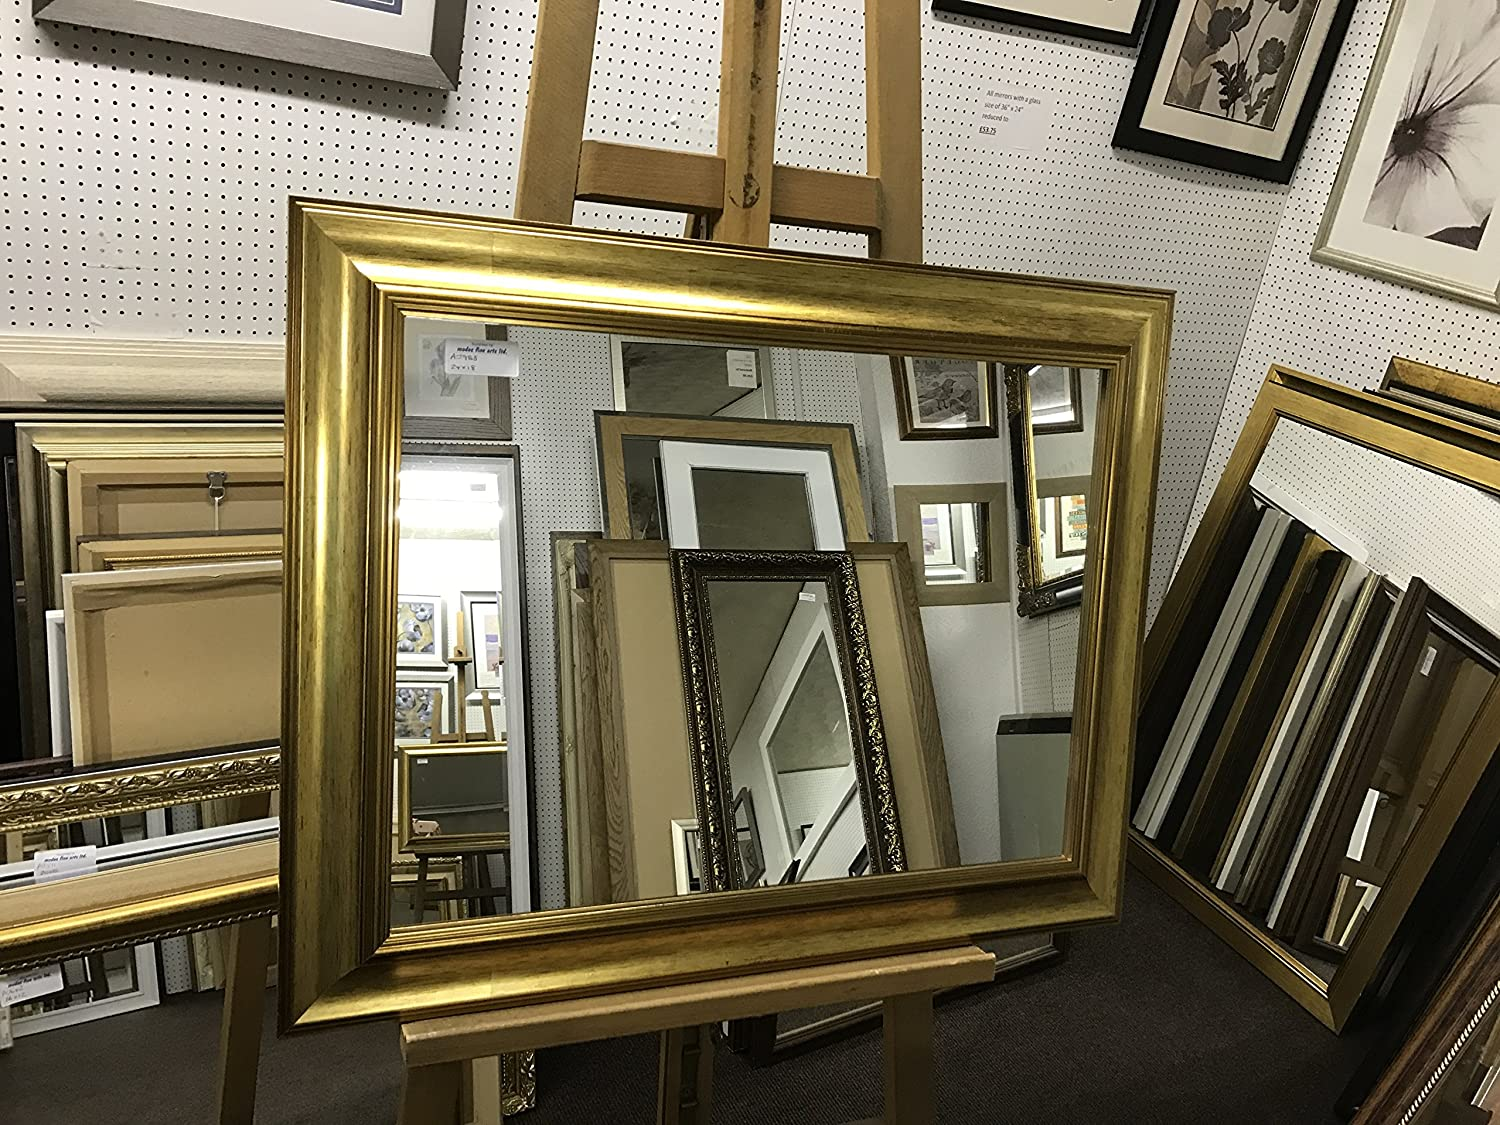 NEW MODERN PLAIN SHAPED GOLD WALL OVERMANTLE MIRRORS - VARIOUS (Bevel Mirror Glass, 26